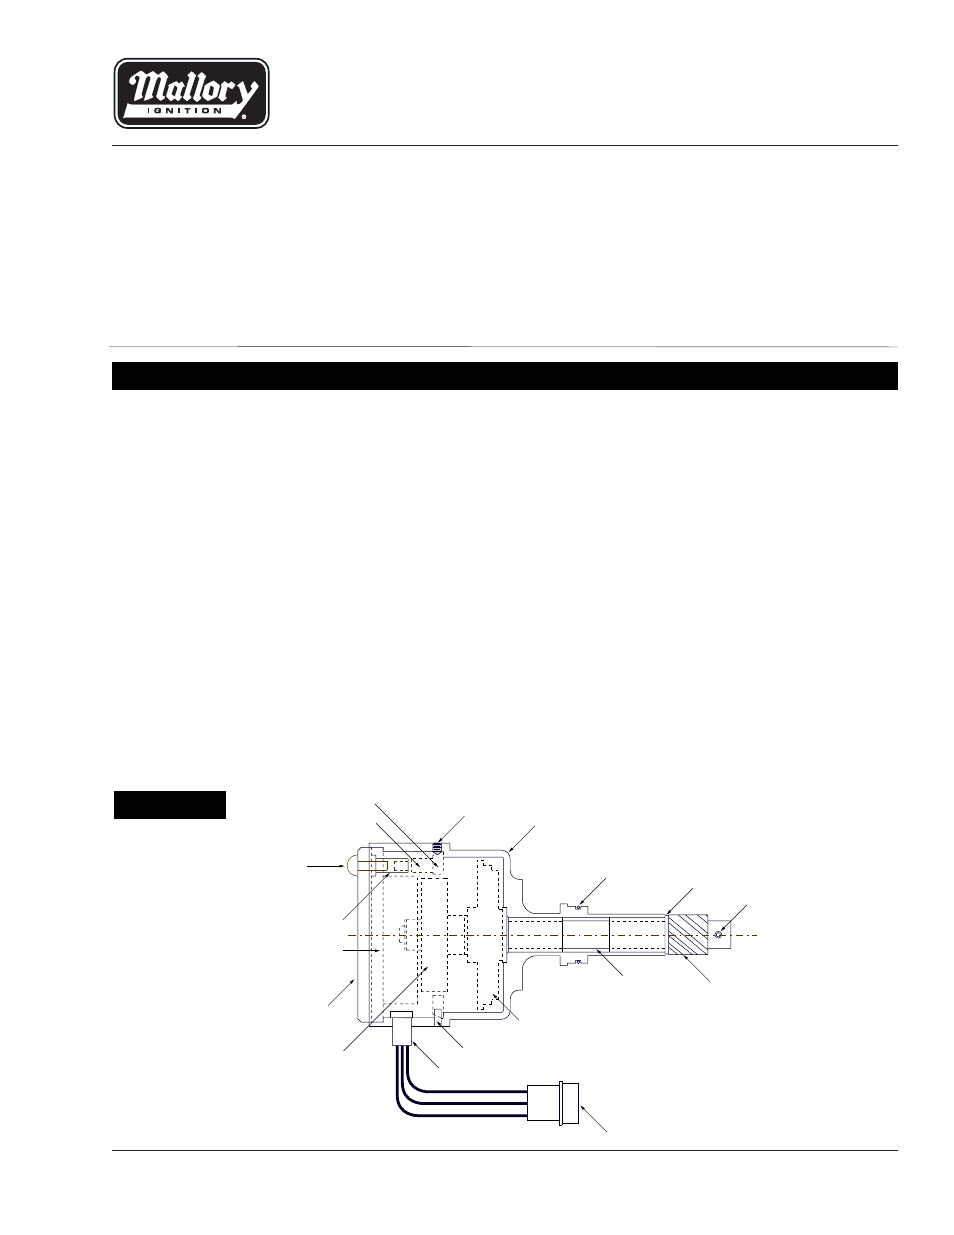 mallory ignition mallory unilite distributor 576 page1?resize\\\\\=665%2C861 mallory 5048201 wiring diagram wiring diagrams mallory unilite distributor wiring diagram at gsmx.co